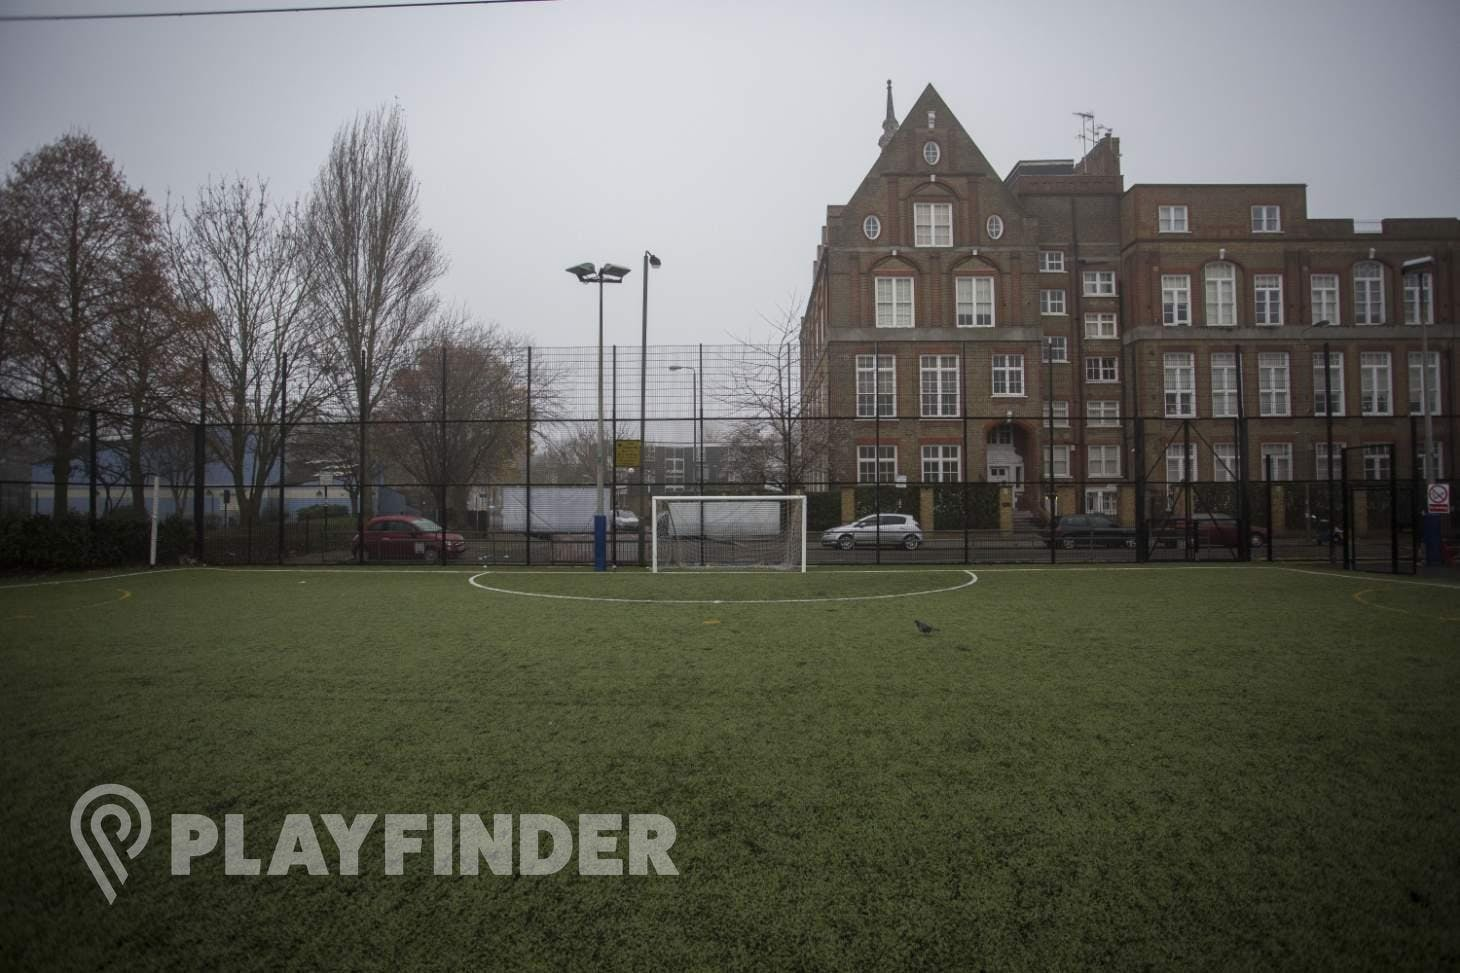 Clapham Junction - Football567.com 6 a side | 3G Astroturf football pitch